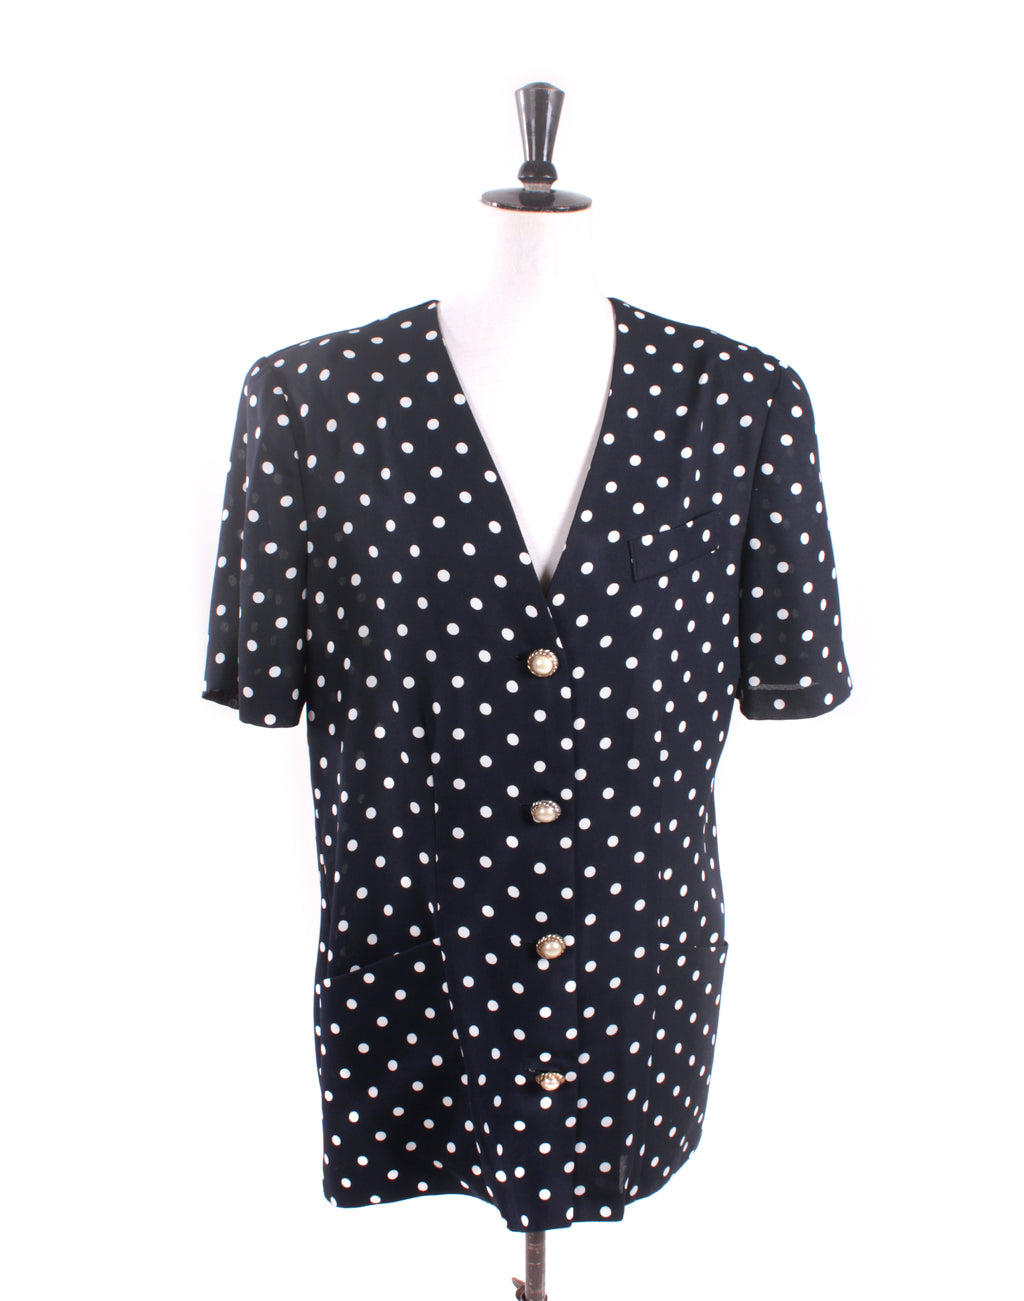 Dolina Black Polka Dot Shirt Jacket